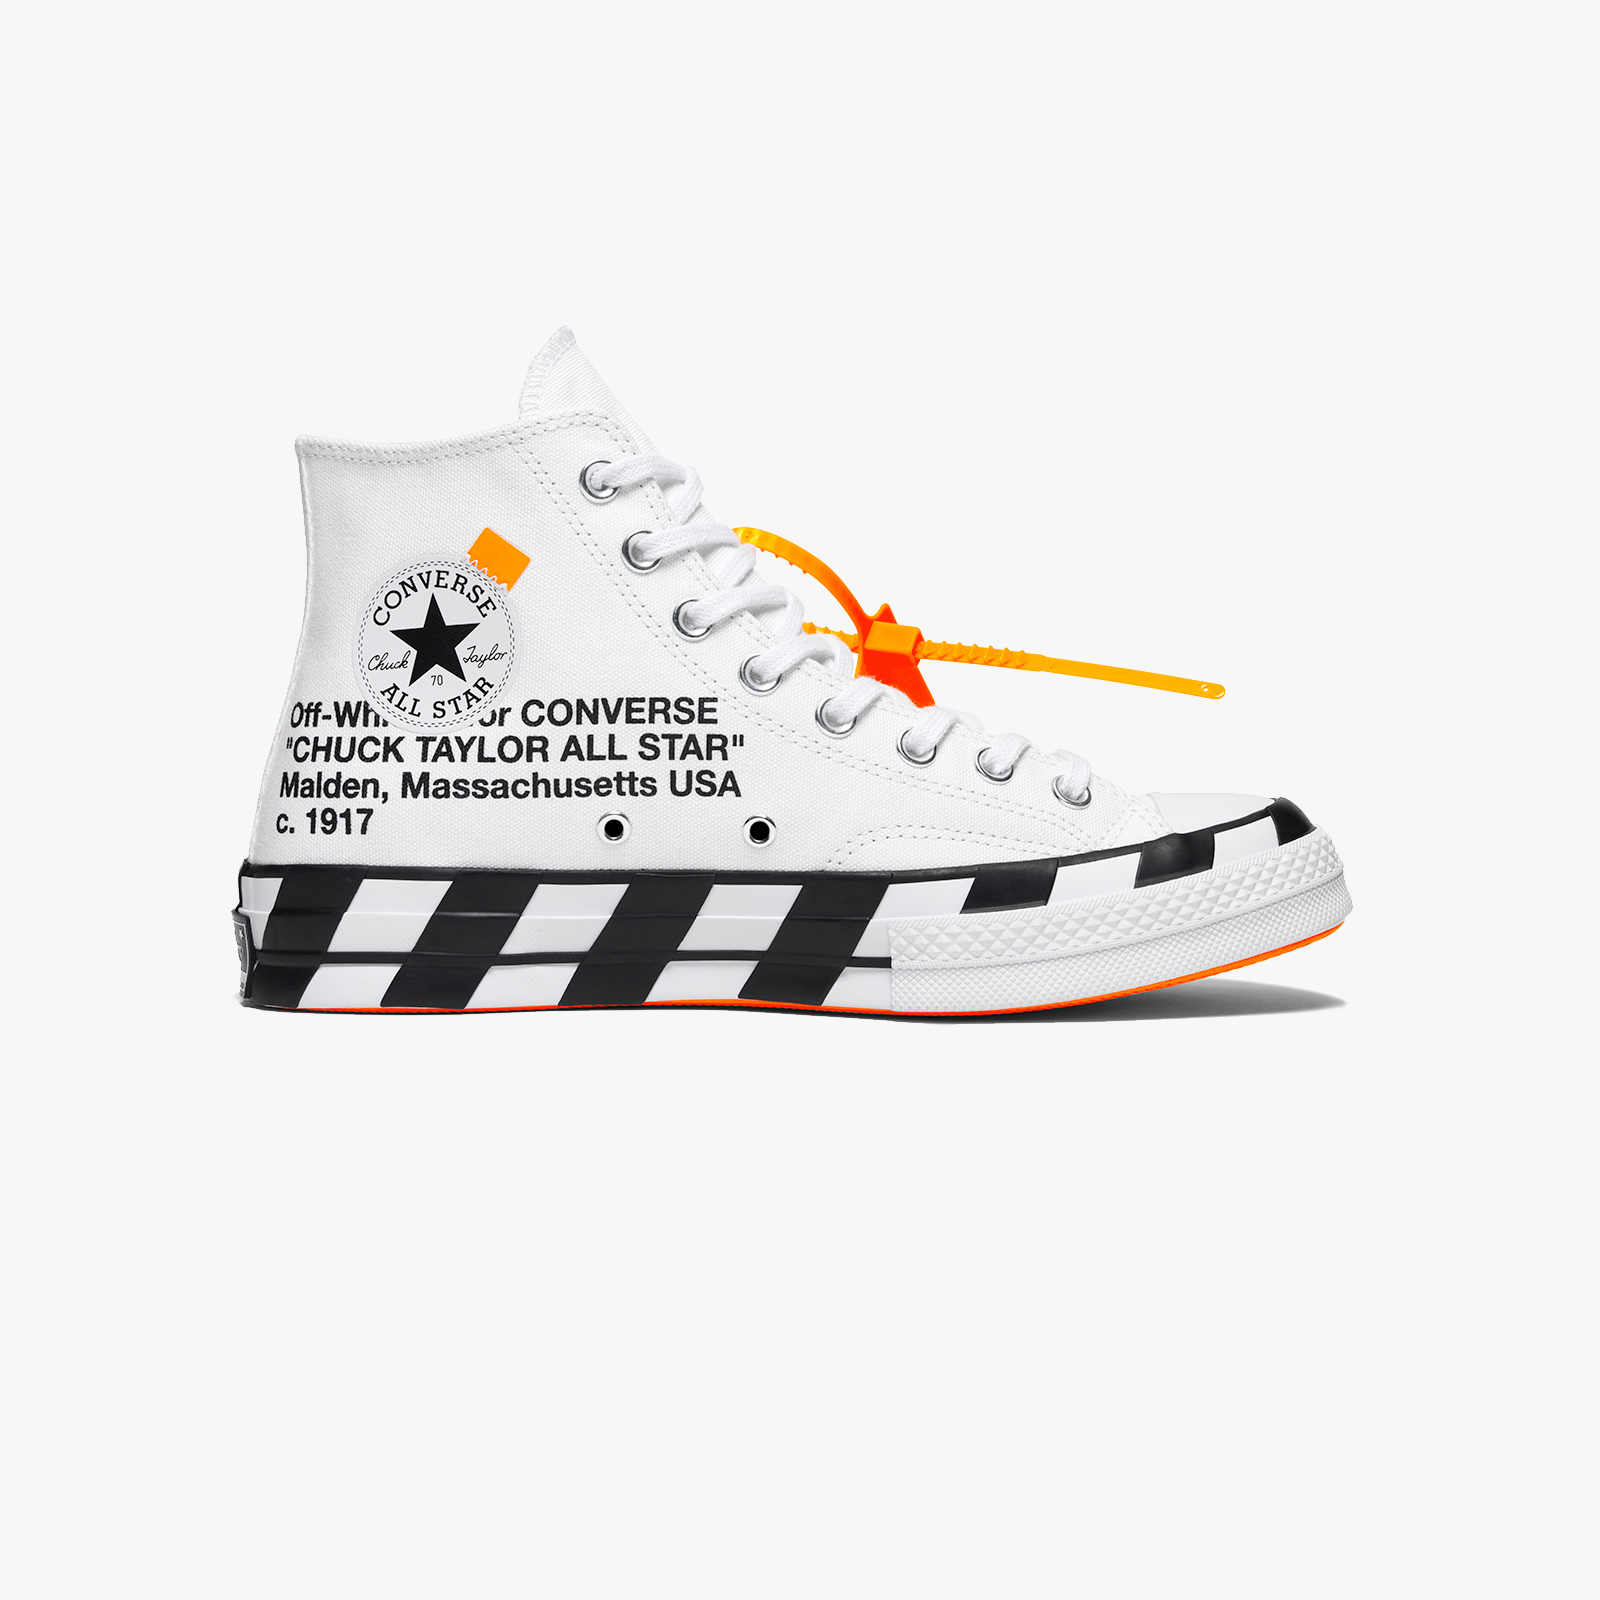 Converse Chuck Taylor 70 x Off White - 163862c - Sneakersnstuff ... 5adefc662